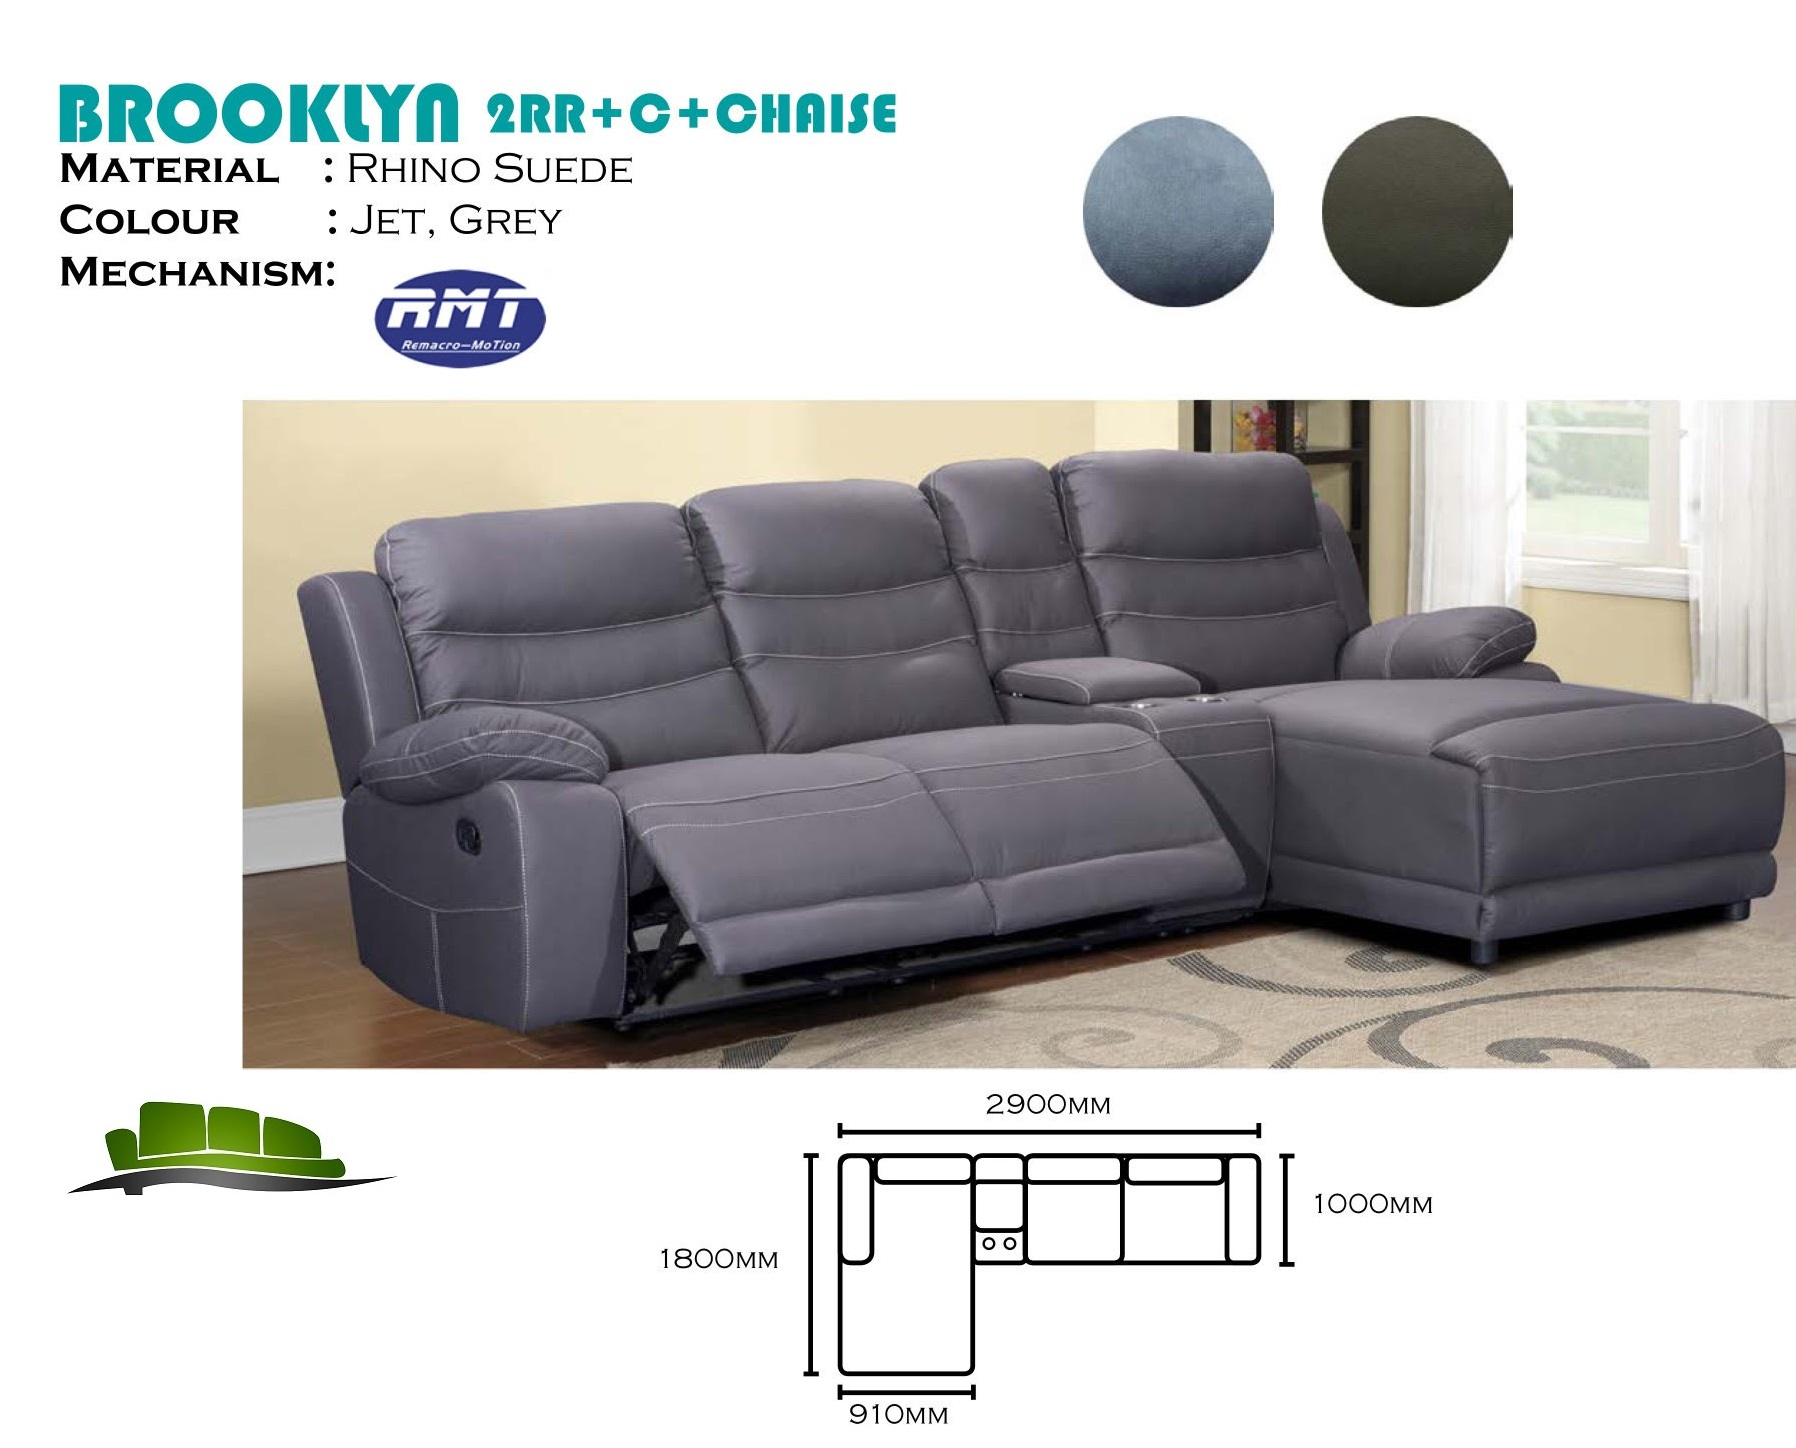 Brooklyn Chaise - Copy